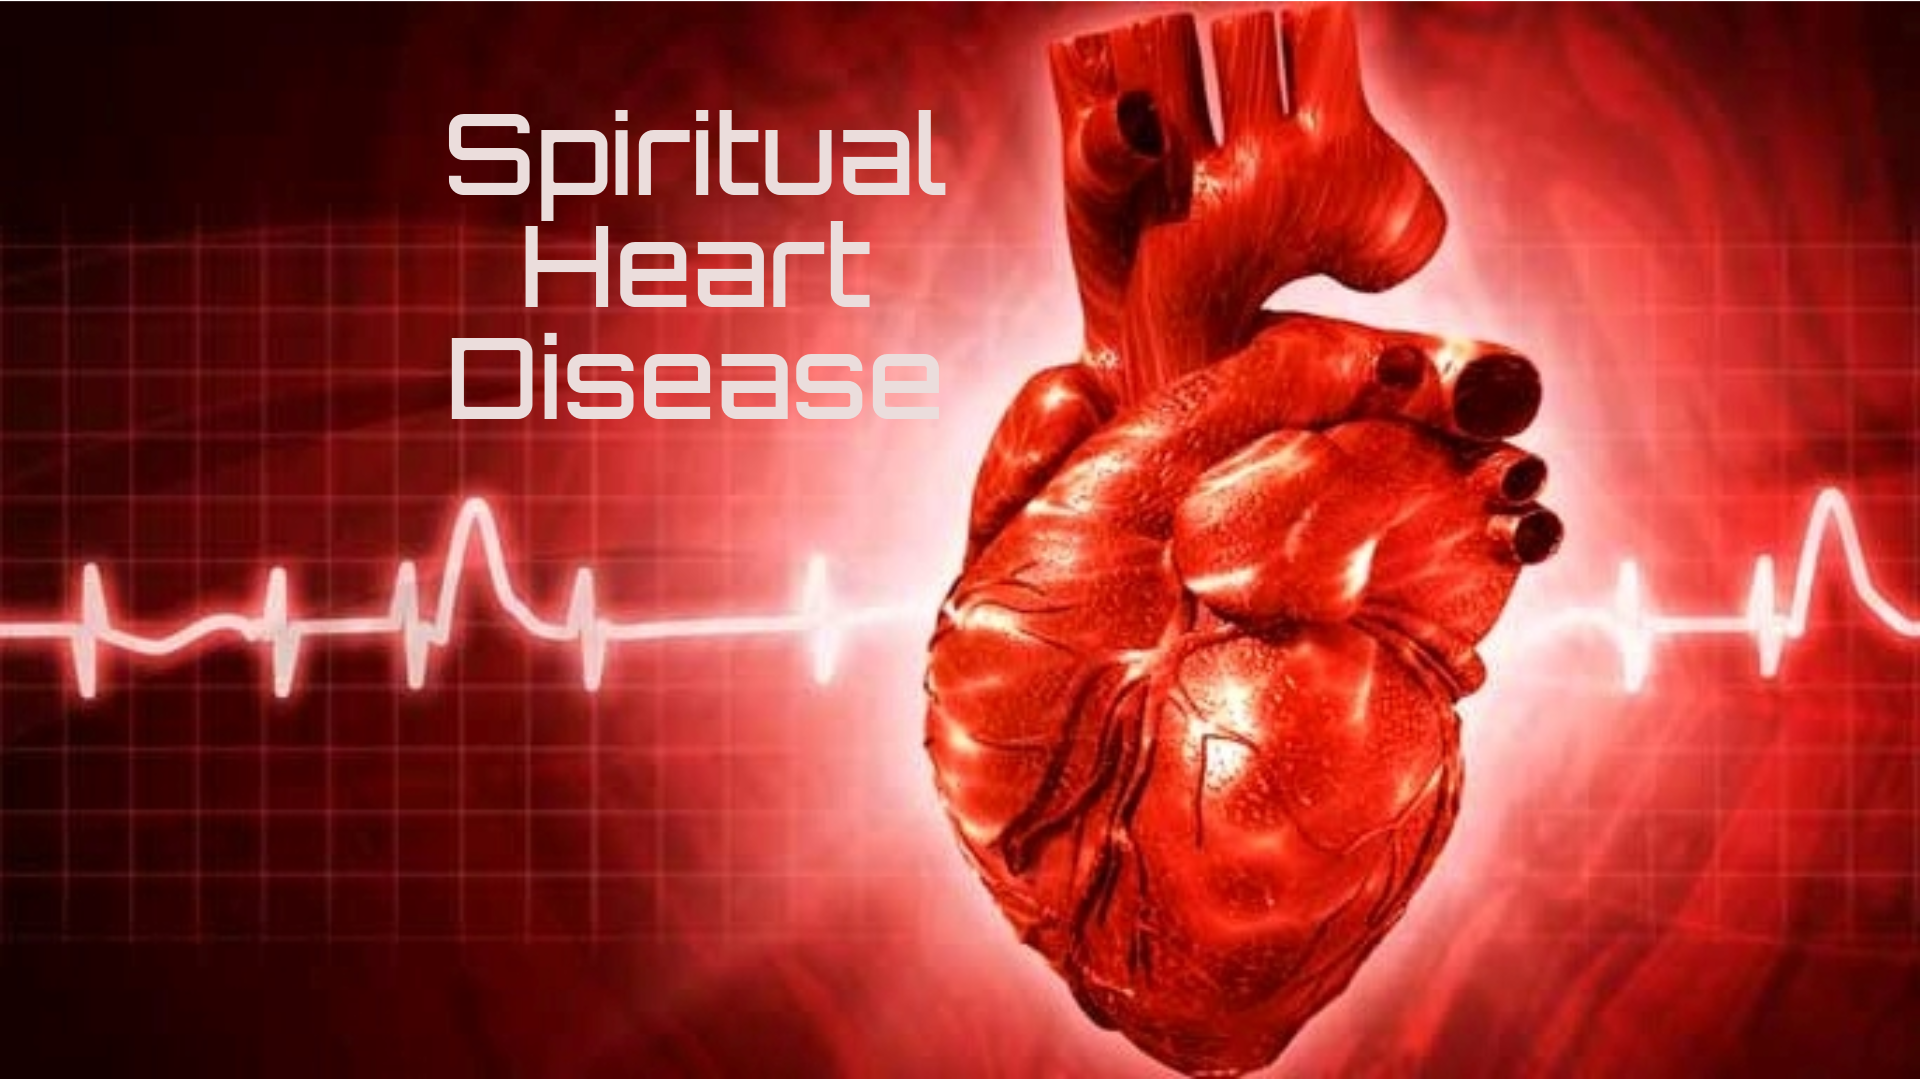 The Road to Spiritual Heart Disease, Part 1 - RSHD01